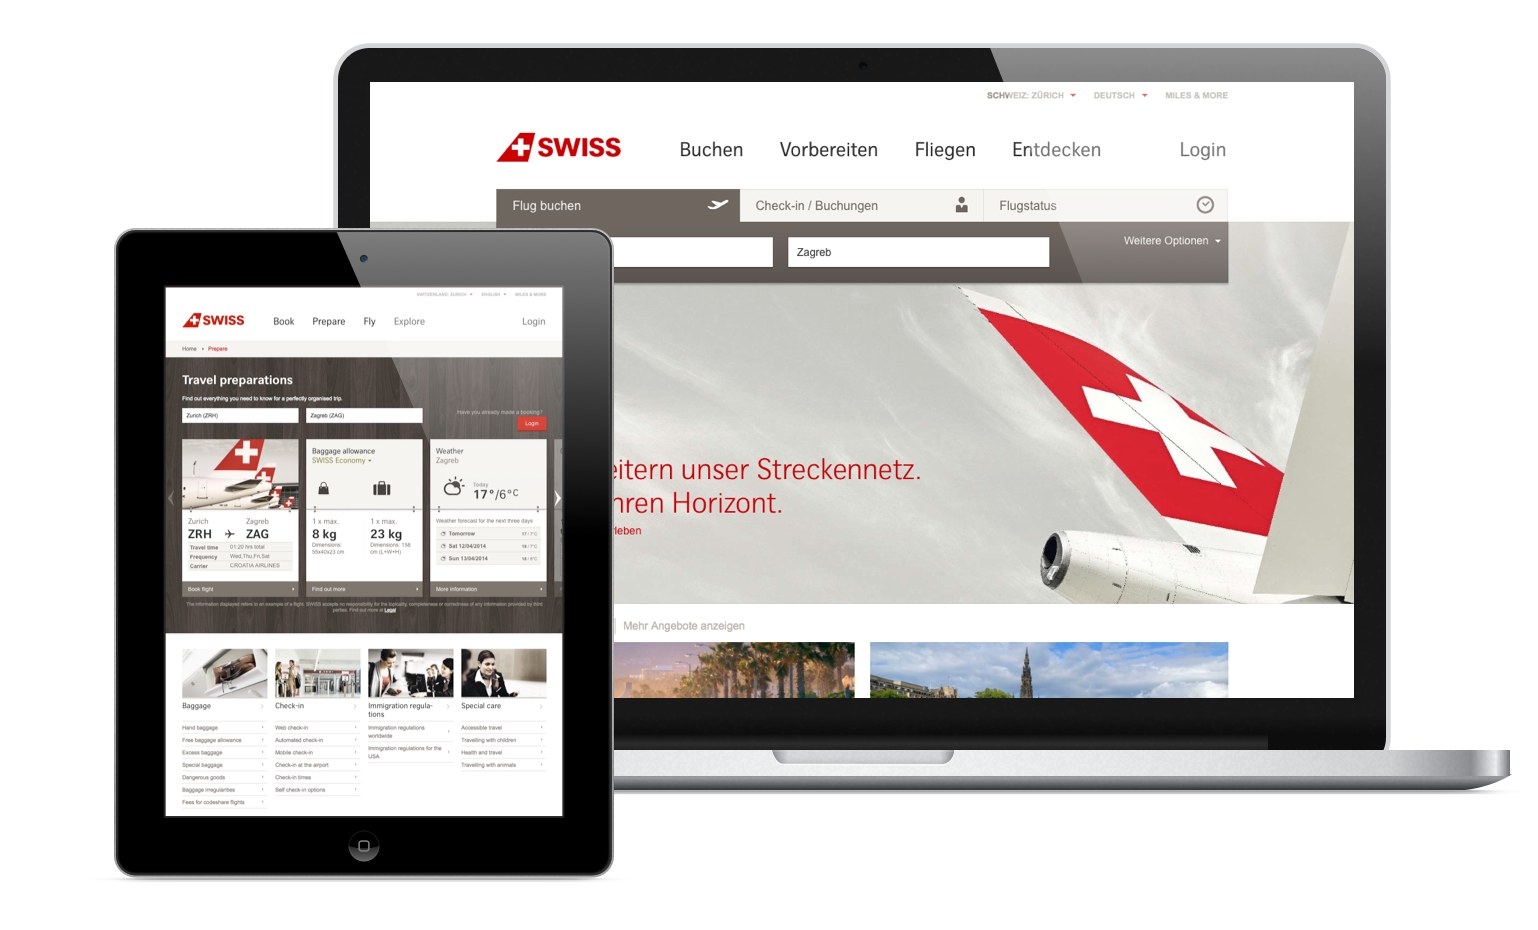 Screenshots of the Swiss.com website on different devices showcasing the responsive design